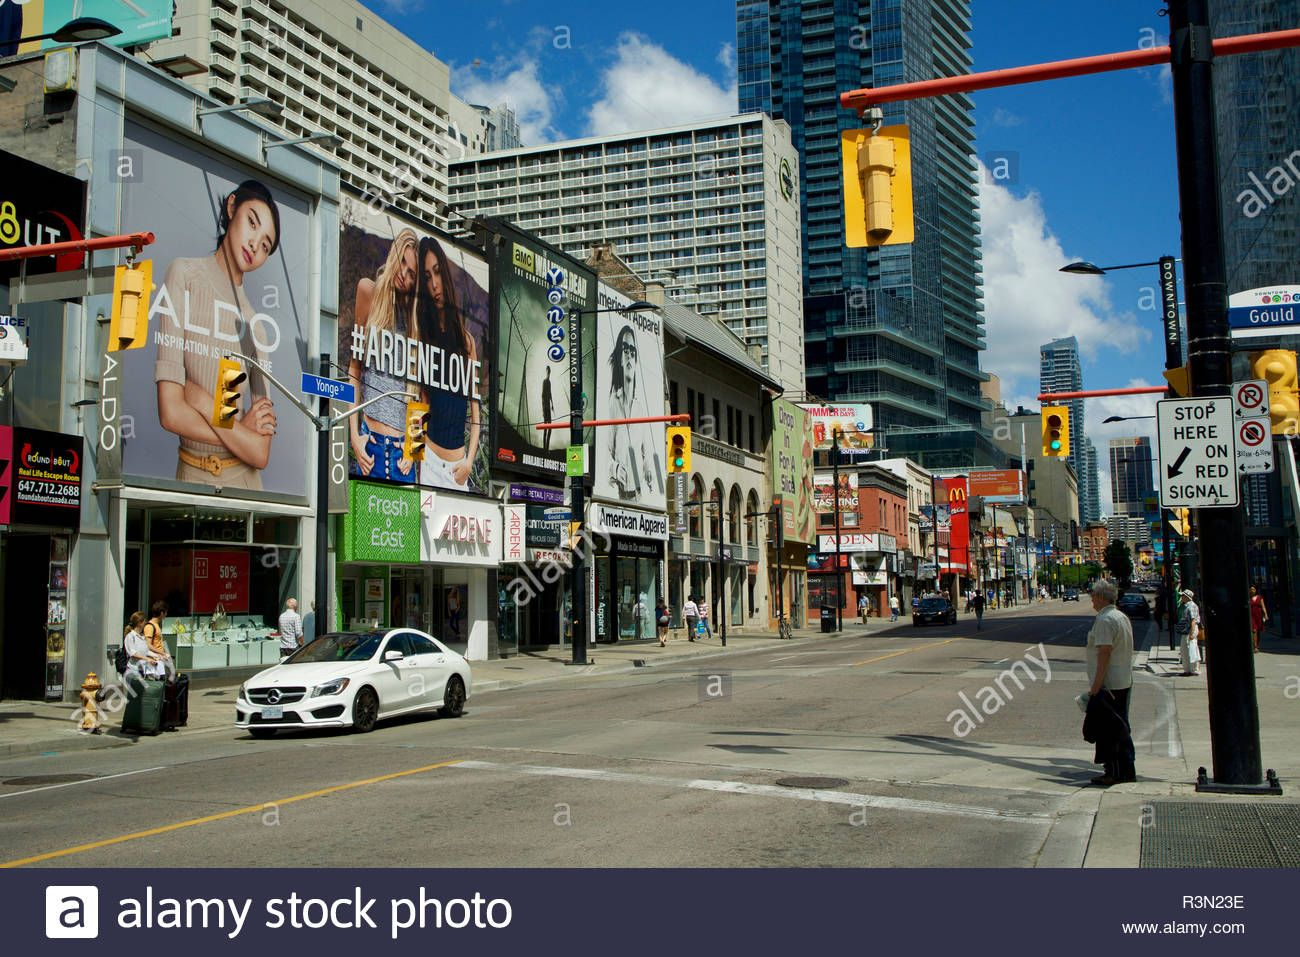 Download This Stock Image Canada Ontario Toronto Downtown Architecture Yonge Street At Ryerson University Area R3n23e From Yonge Street Downtown Toronto